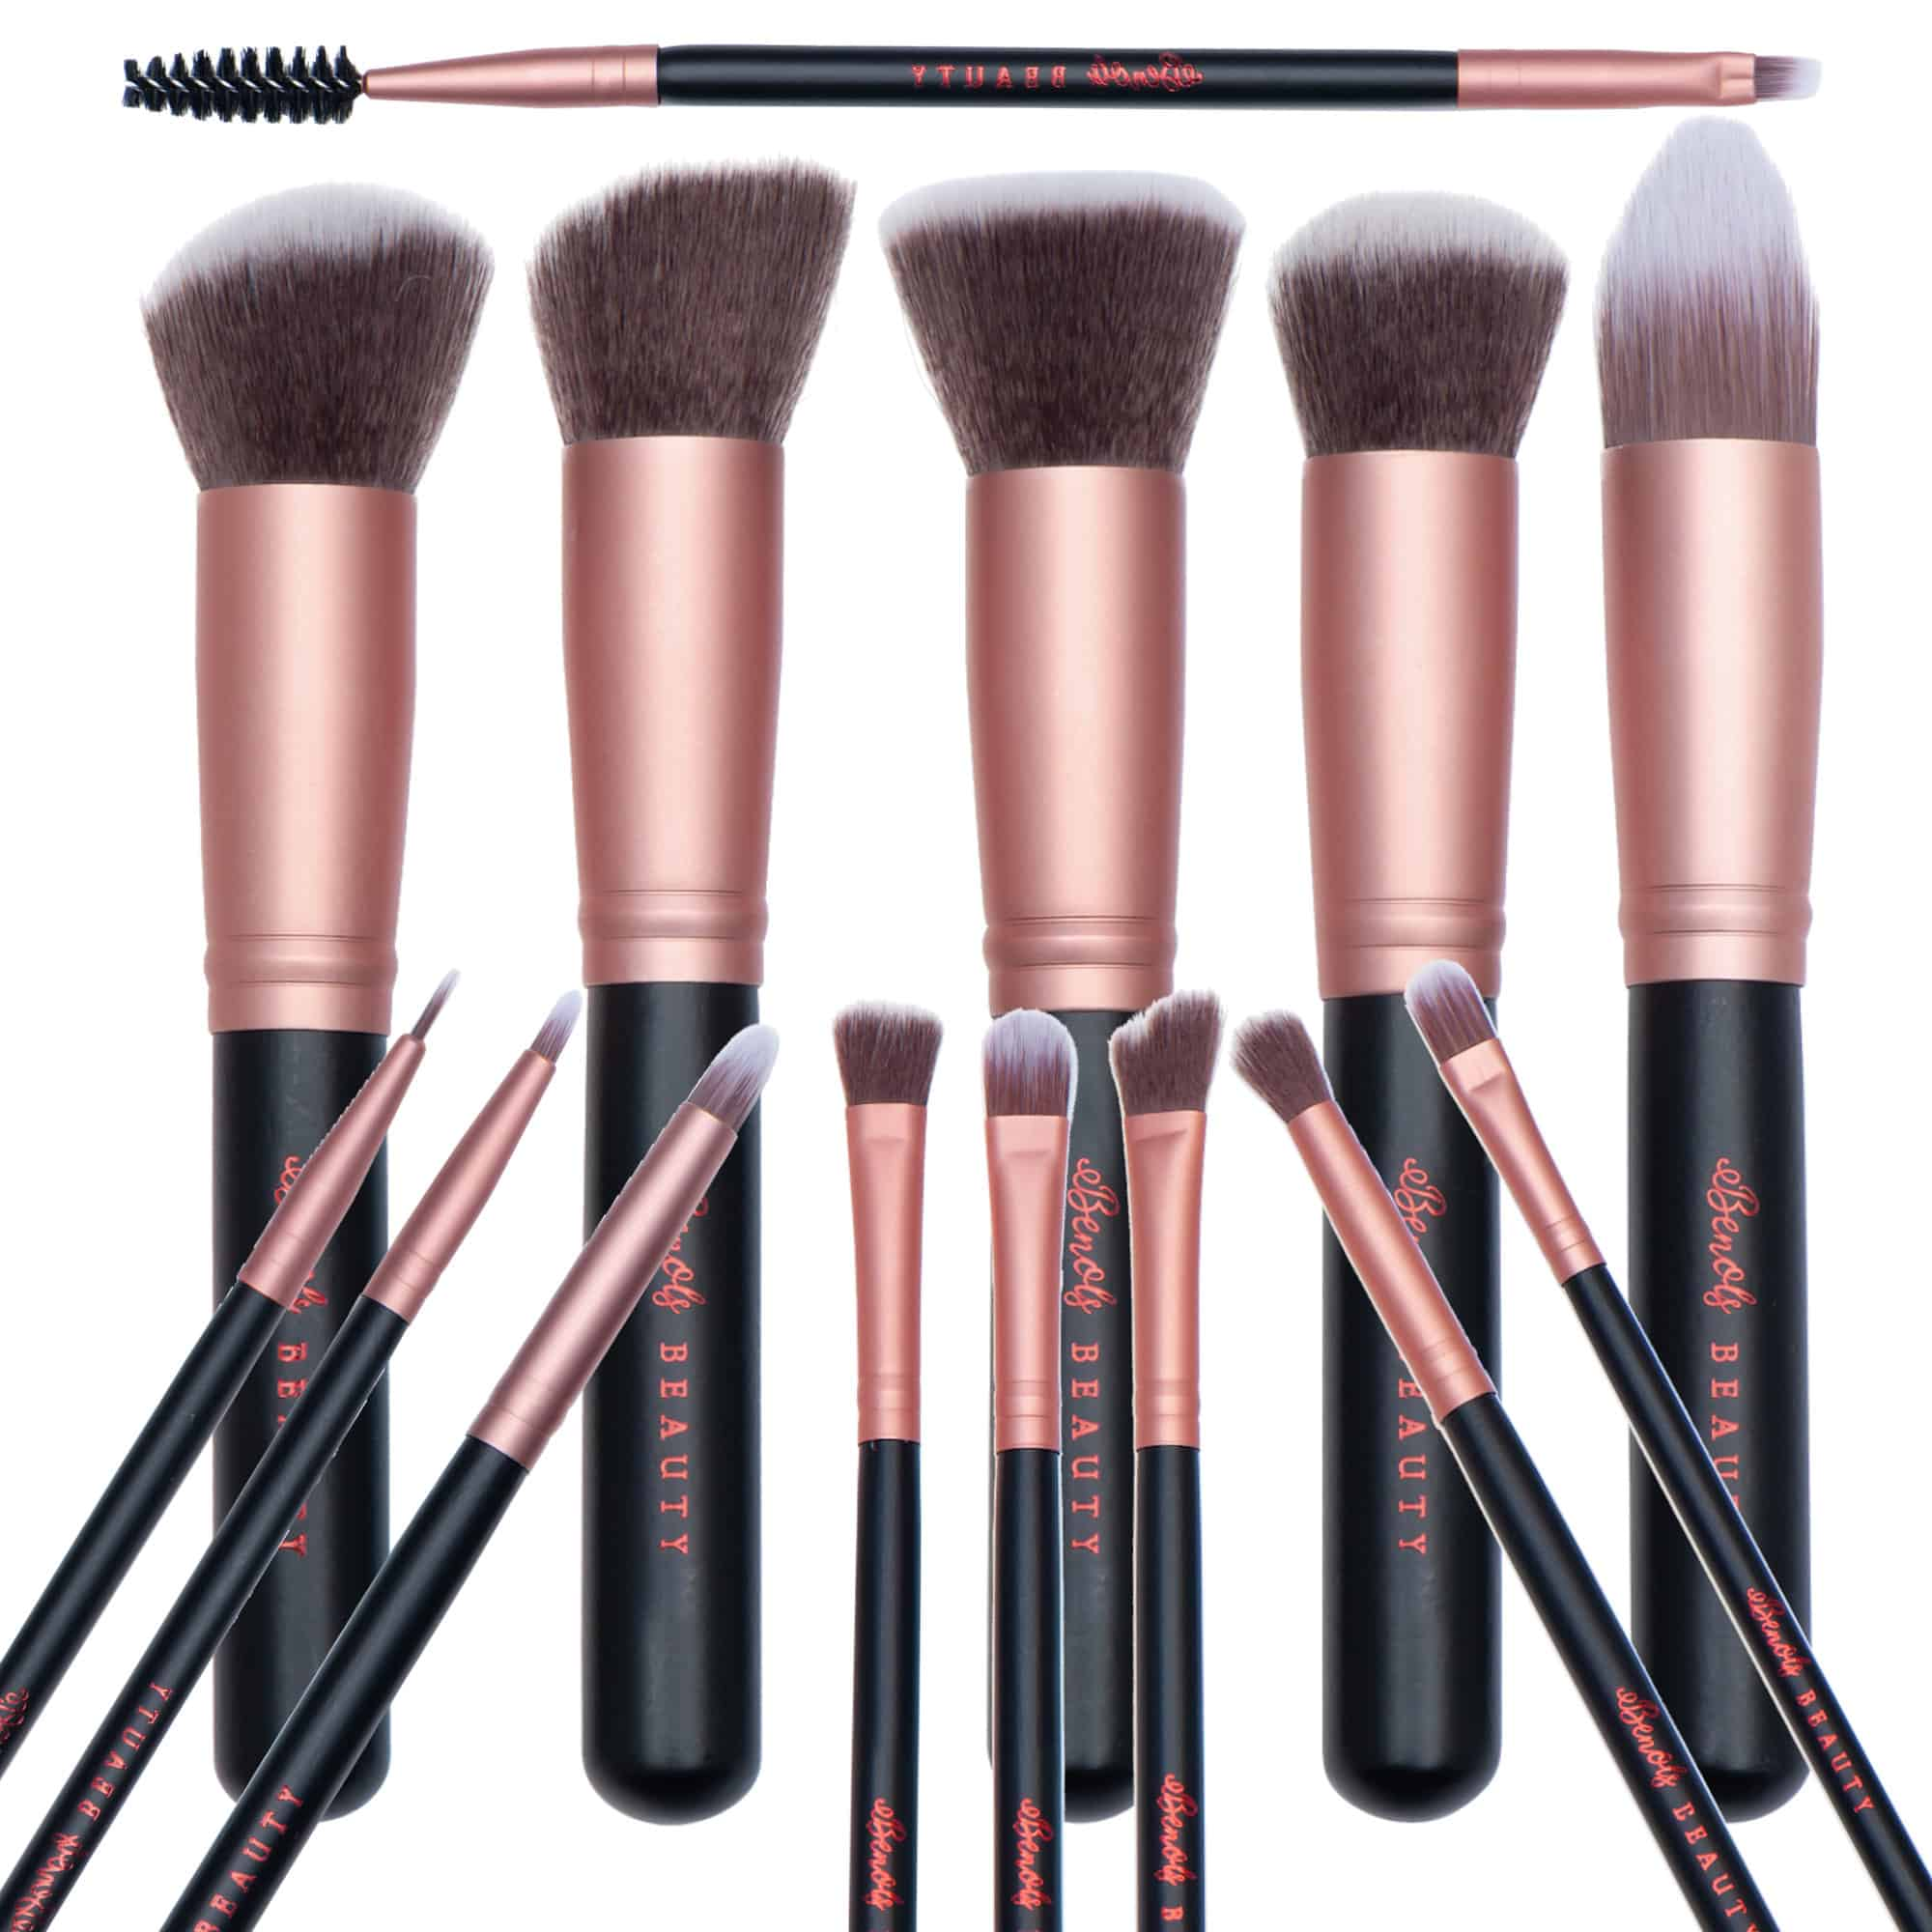 Benols Beauty™ 14pcs Kabuki Professional Makeup Brush Set - Benols Beauty